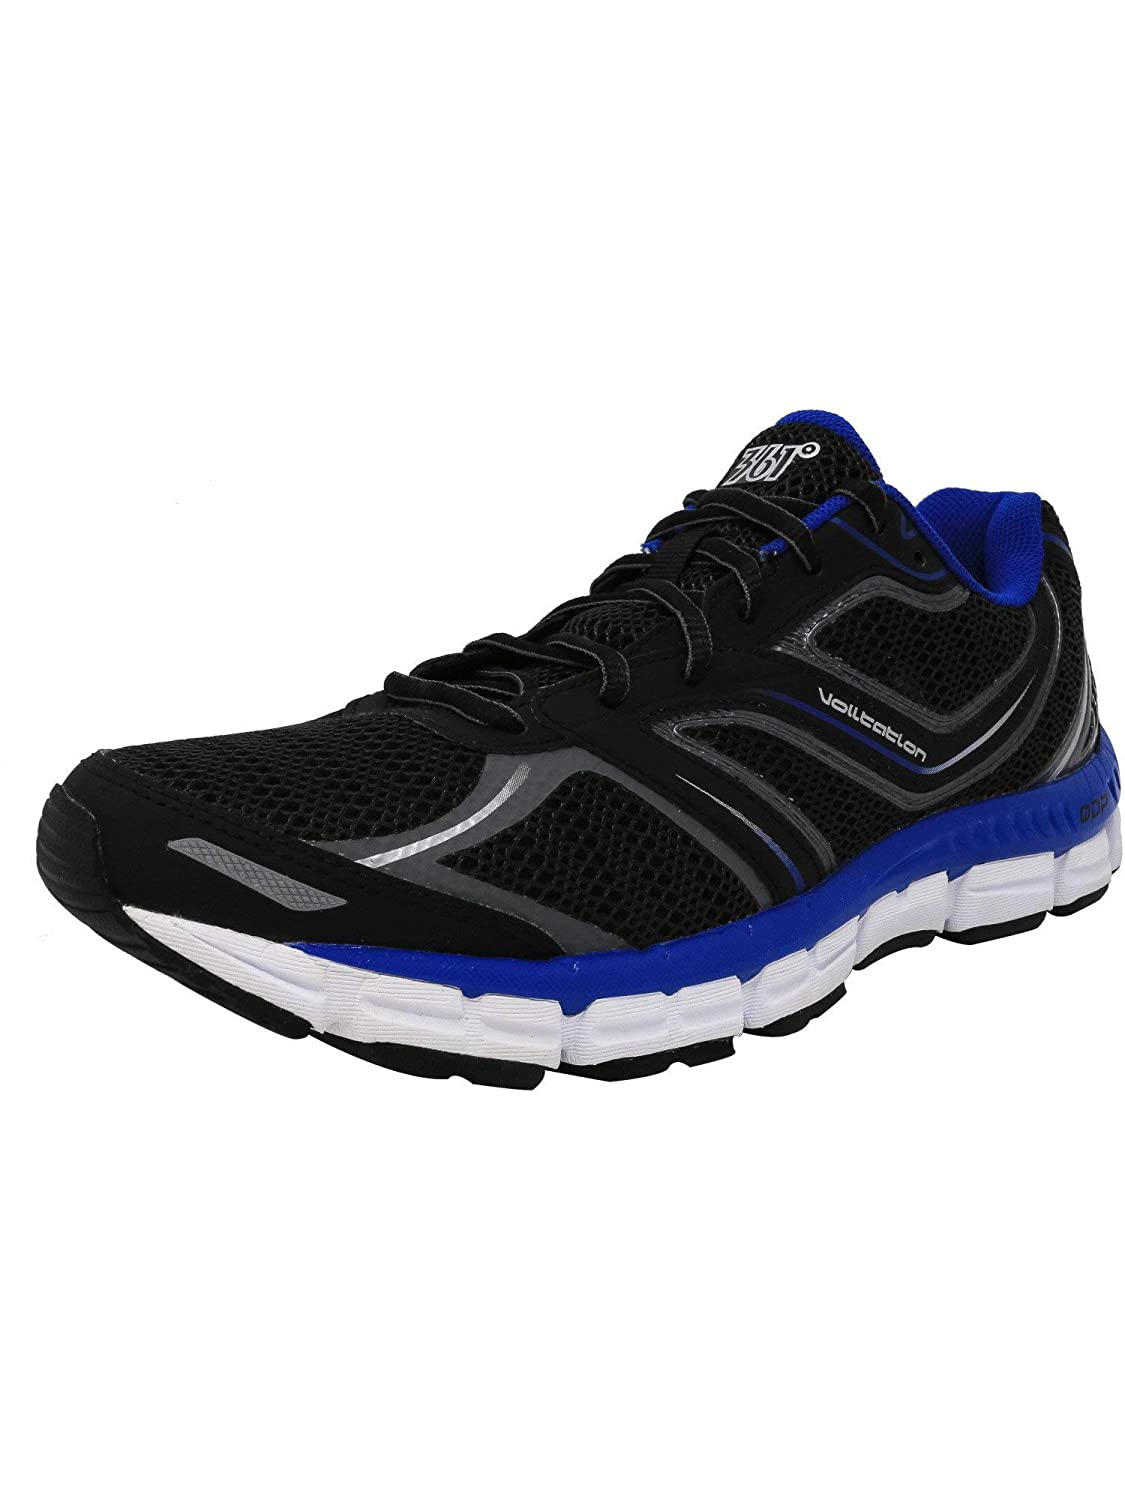 361 Mens Volitation Ankle-High Fabric Running Shoe